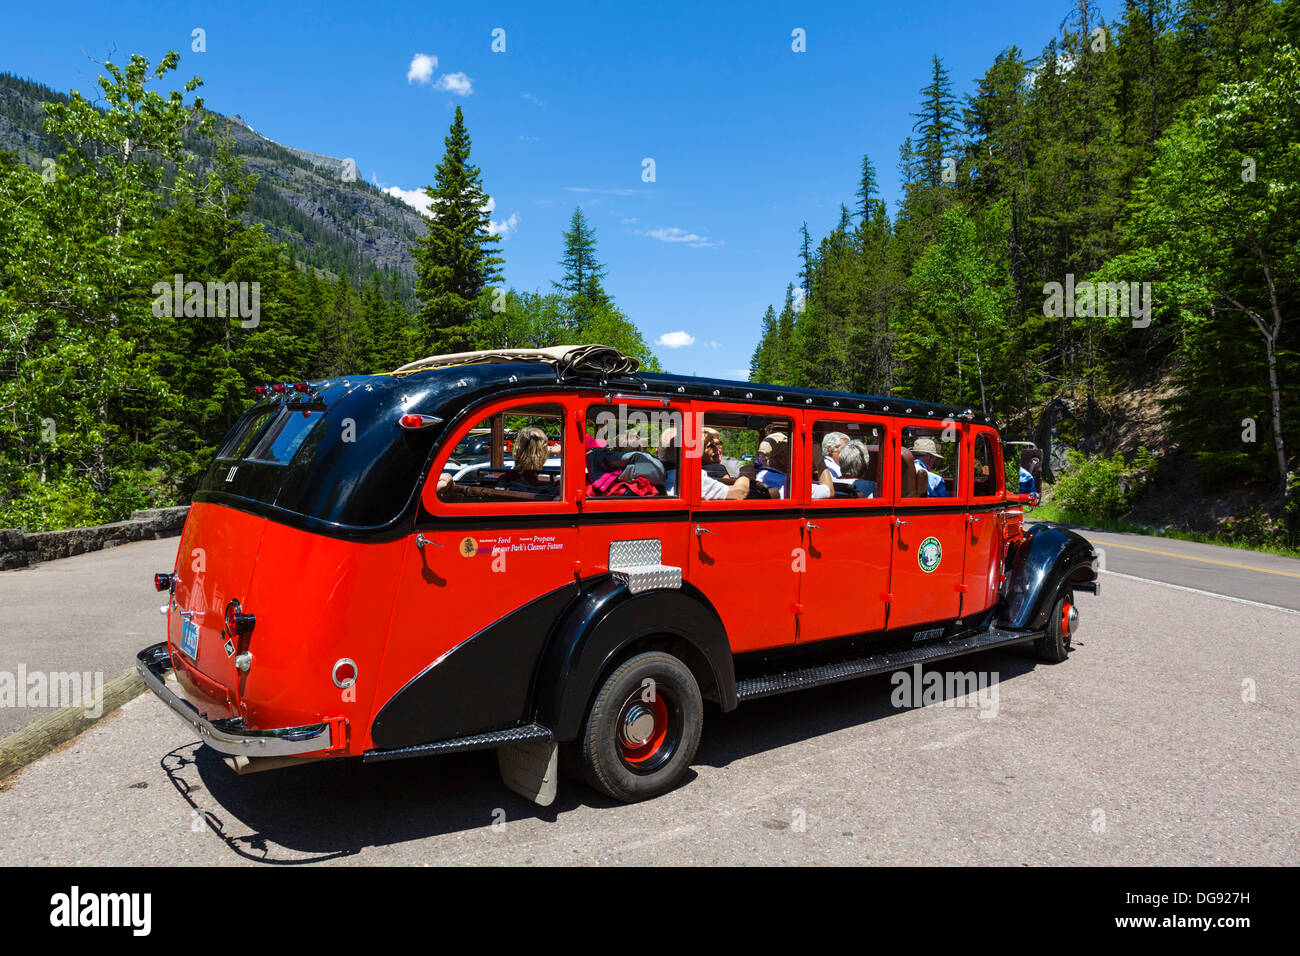 Red Bus Tour in the parking area of McDonald Falls, Glacier National Park, Montana, USA - Stock Image